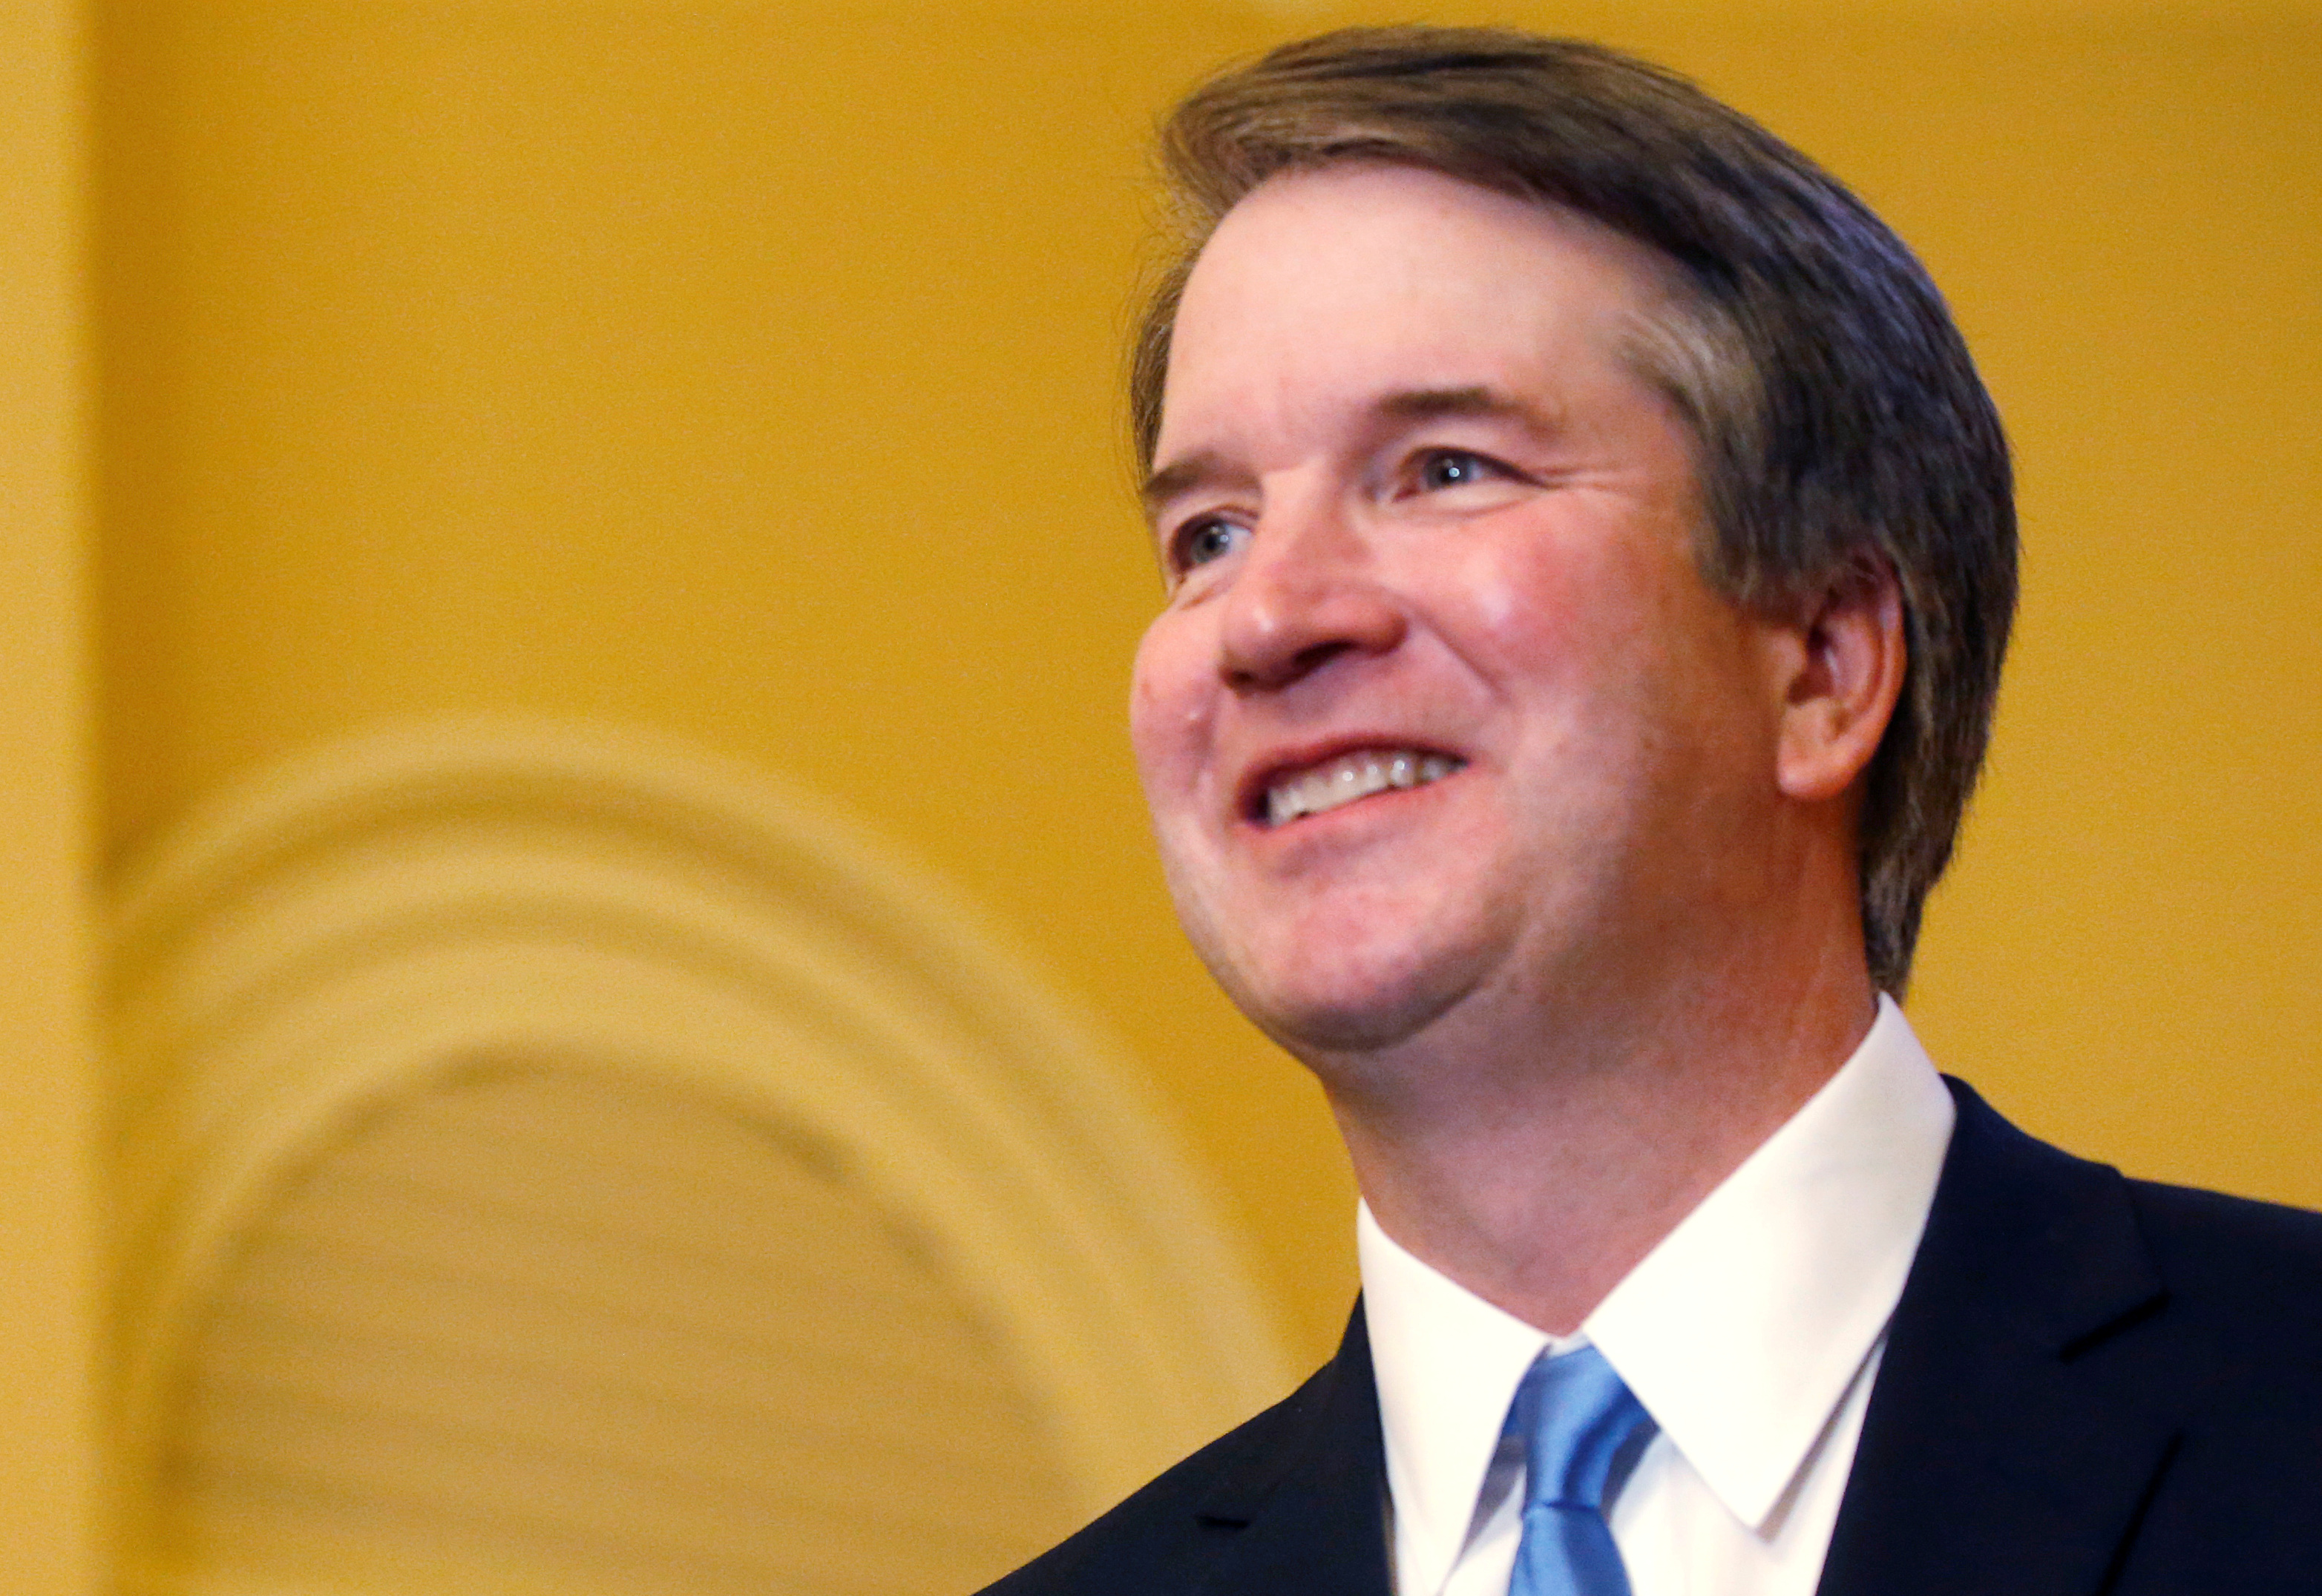 Kavanaugh Cites Litany of Friends as Source of Strength During 'Ugly' Confirmation Process